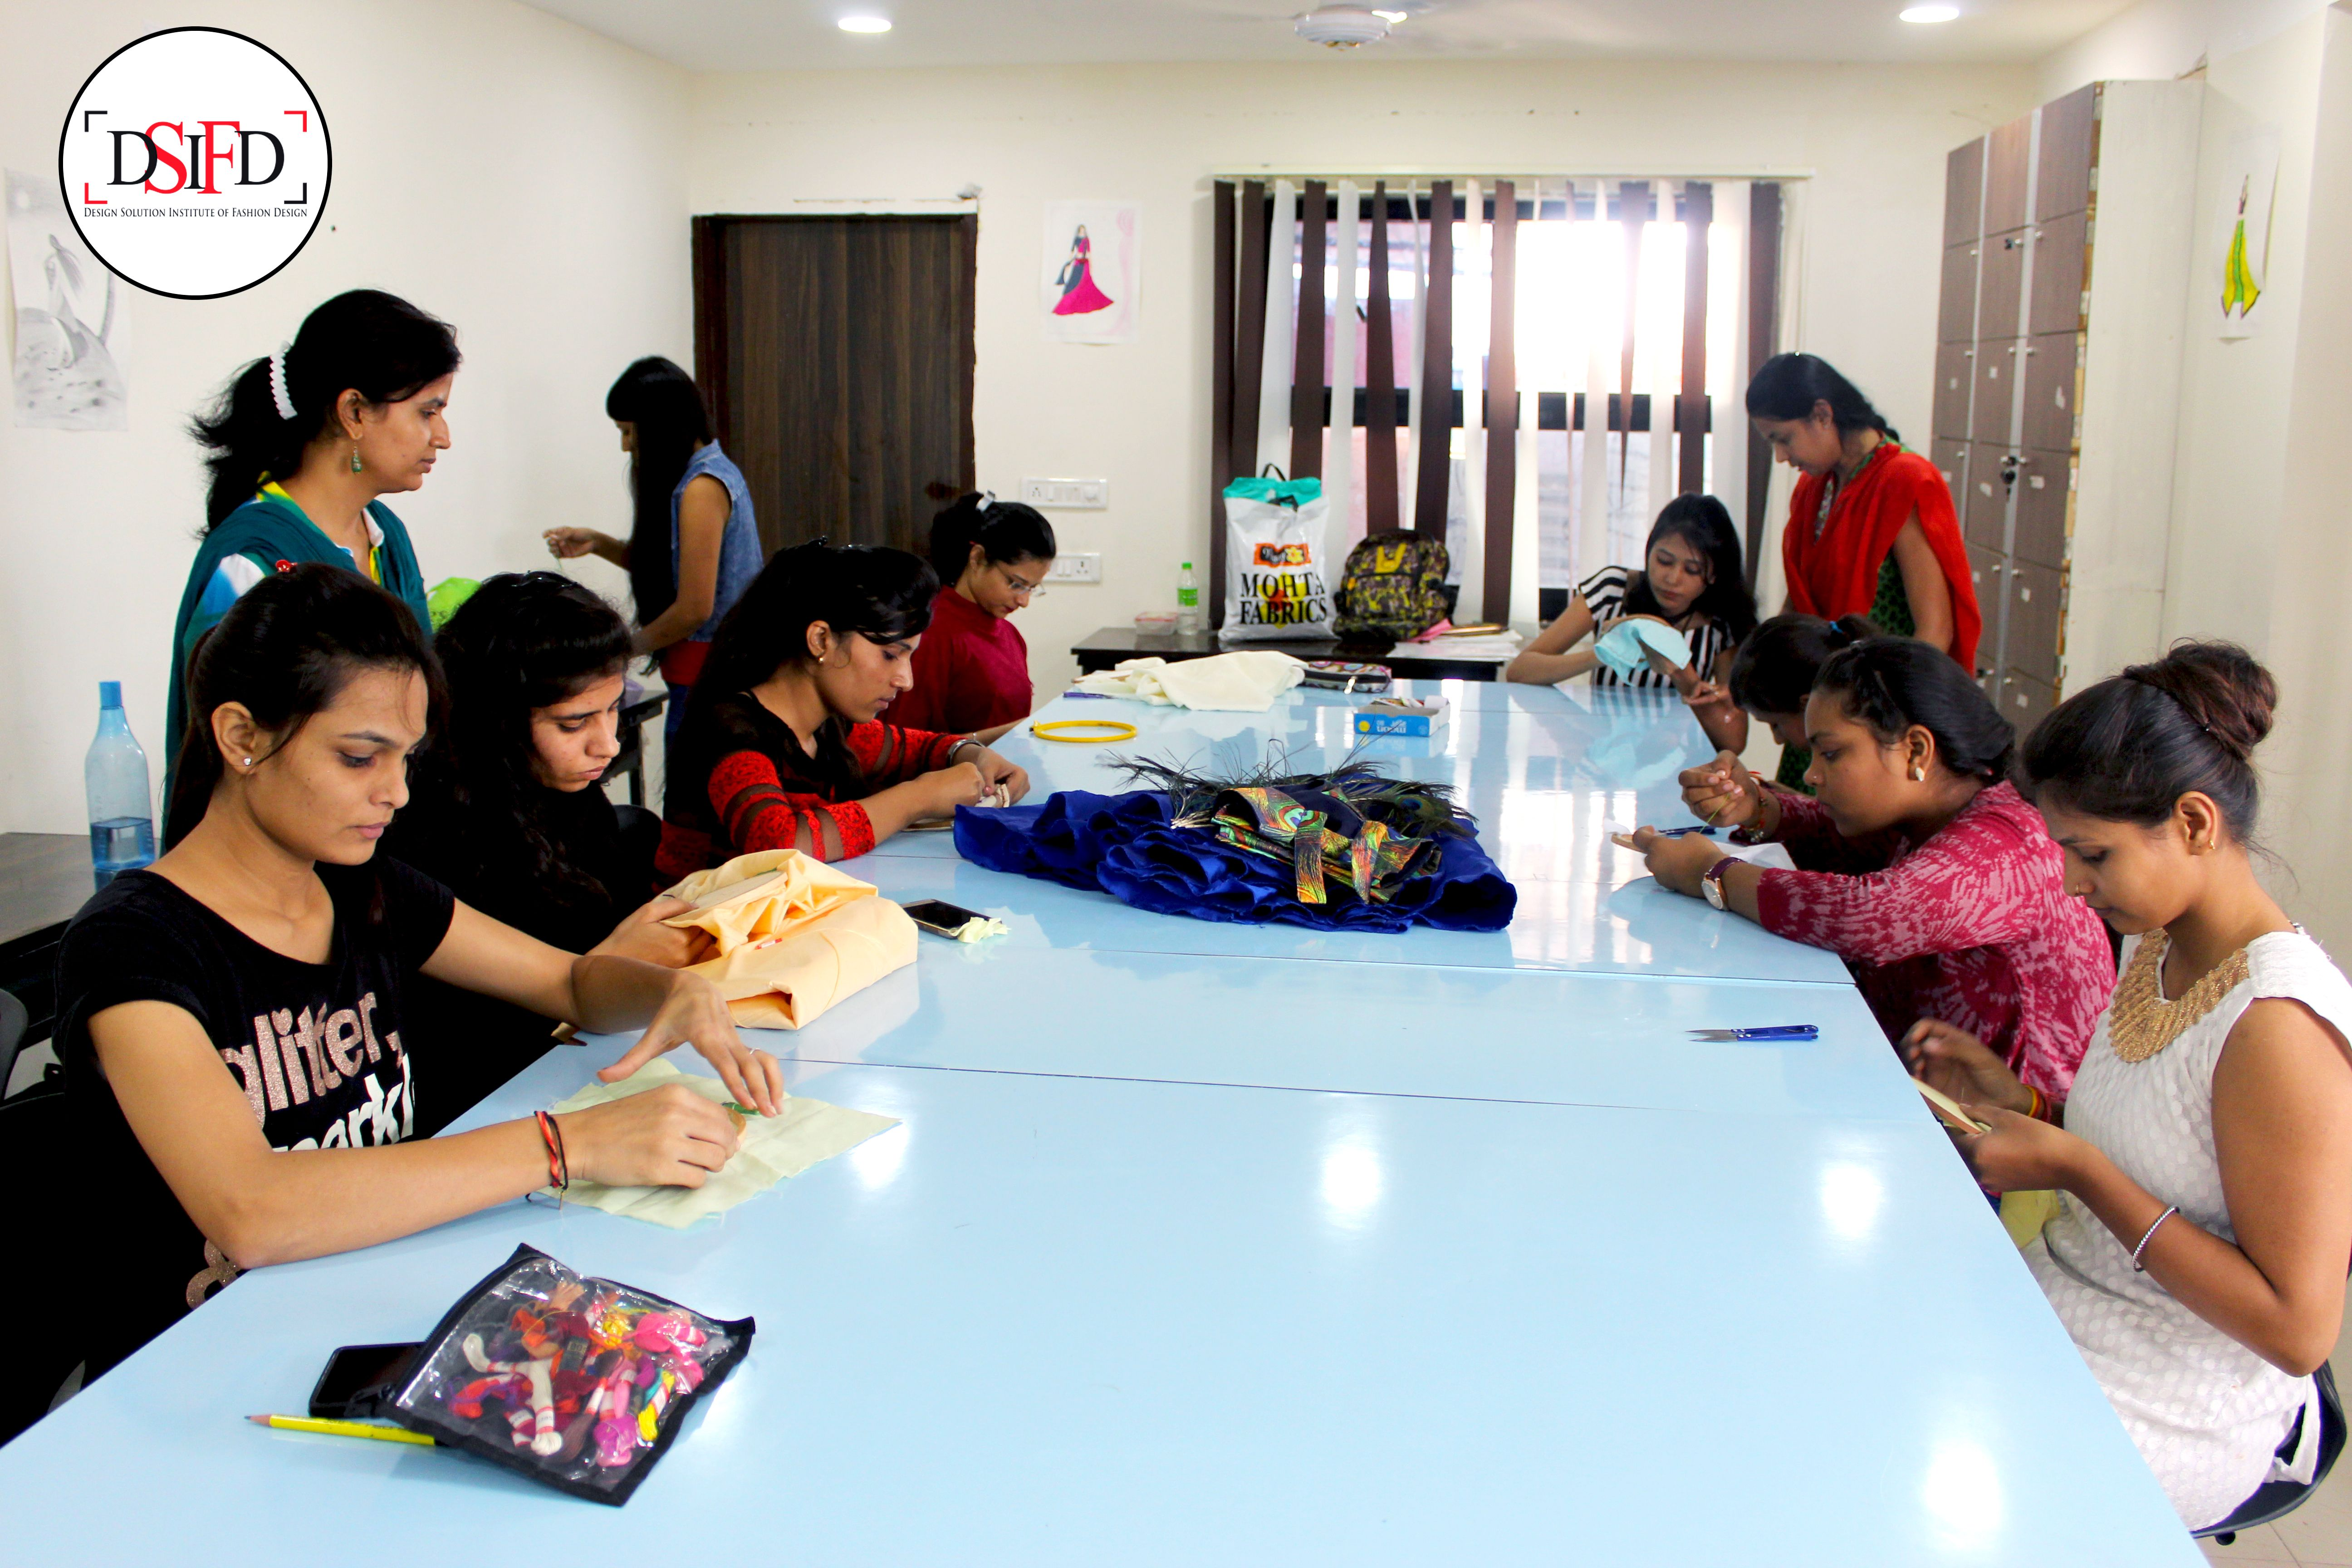 Image Of Our Institute S Fashion Designing Students Studying Designing Concepts Dsifd Joindsifd Lea Fashion Designing Colleges Study Design Concept Design